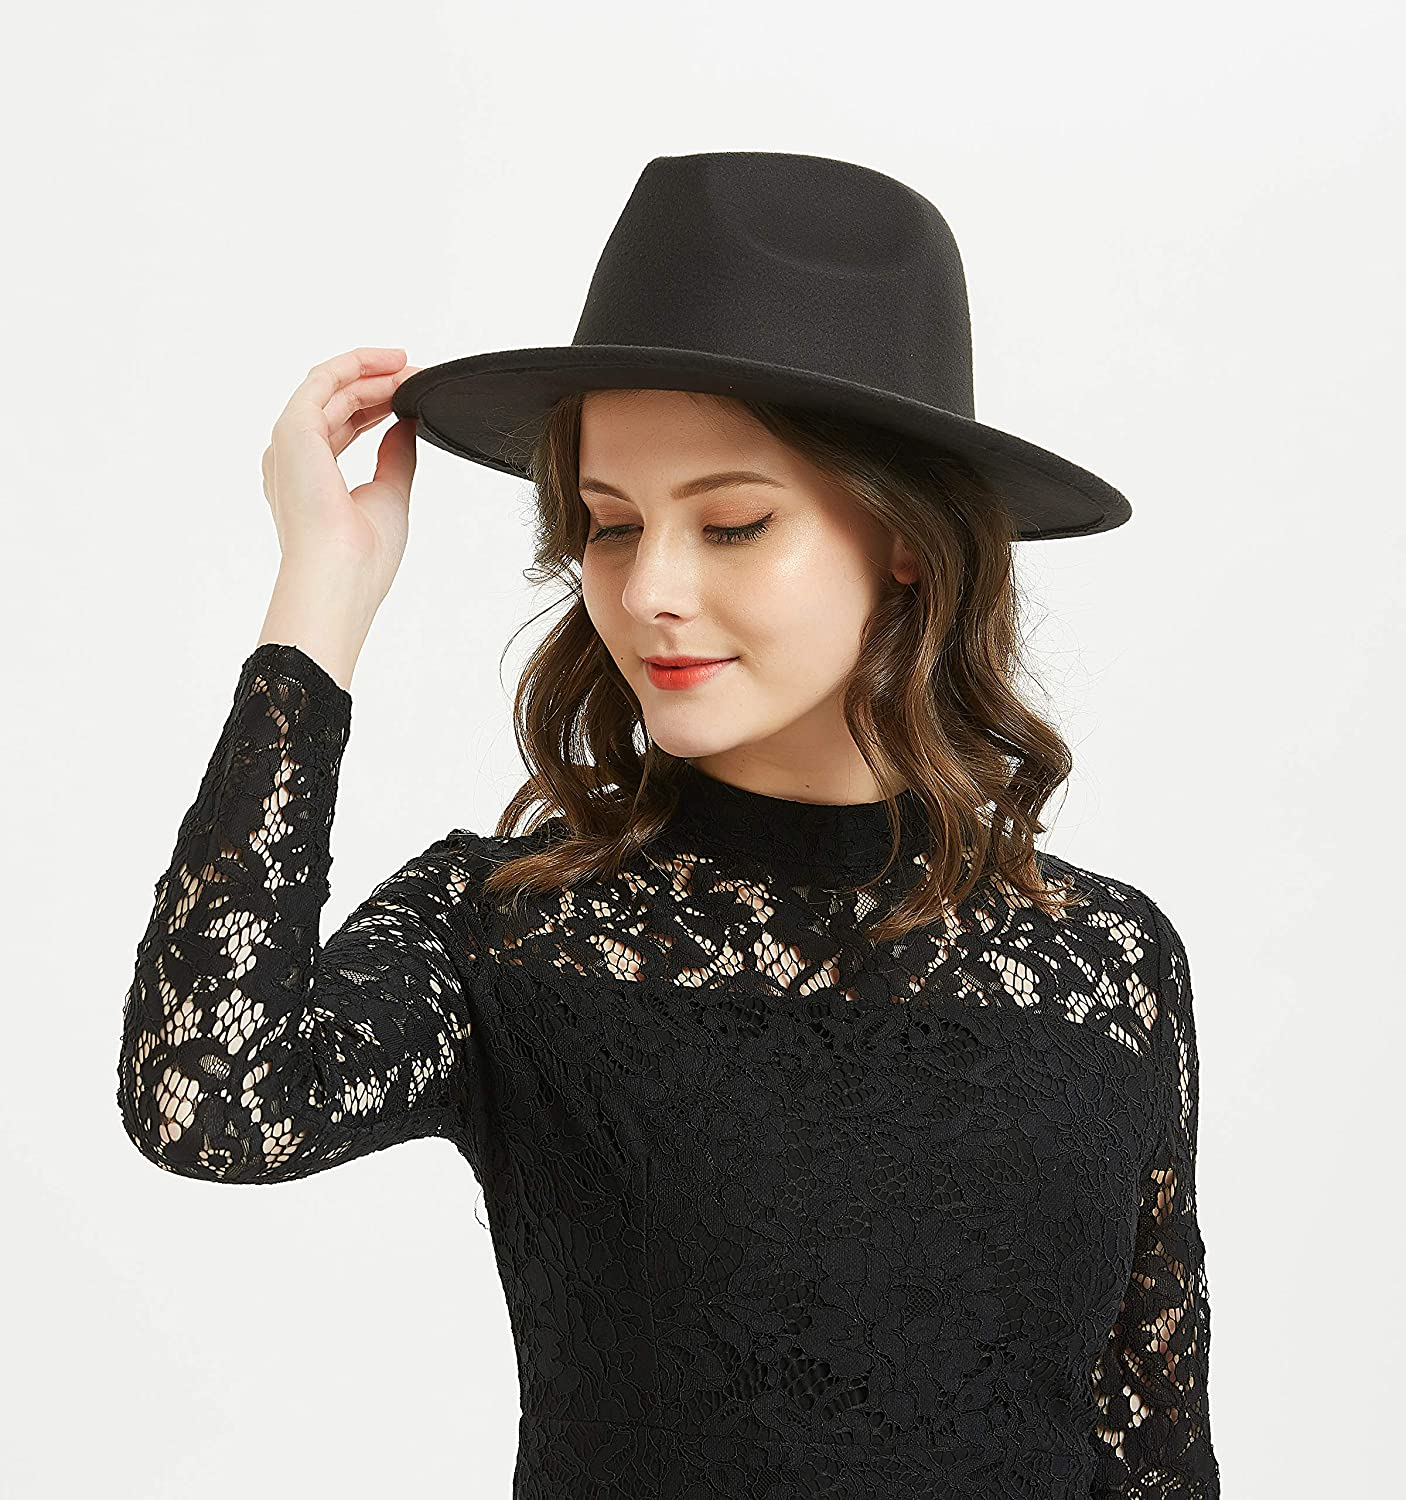 031095cd99b708 Women or Men Woolen Felt Fedora Vintage Short Brim Crushable Jazz Hat at  Amazon Women's Clothing store: